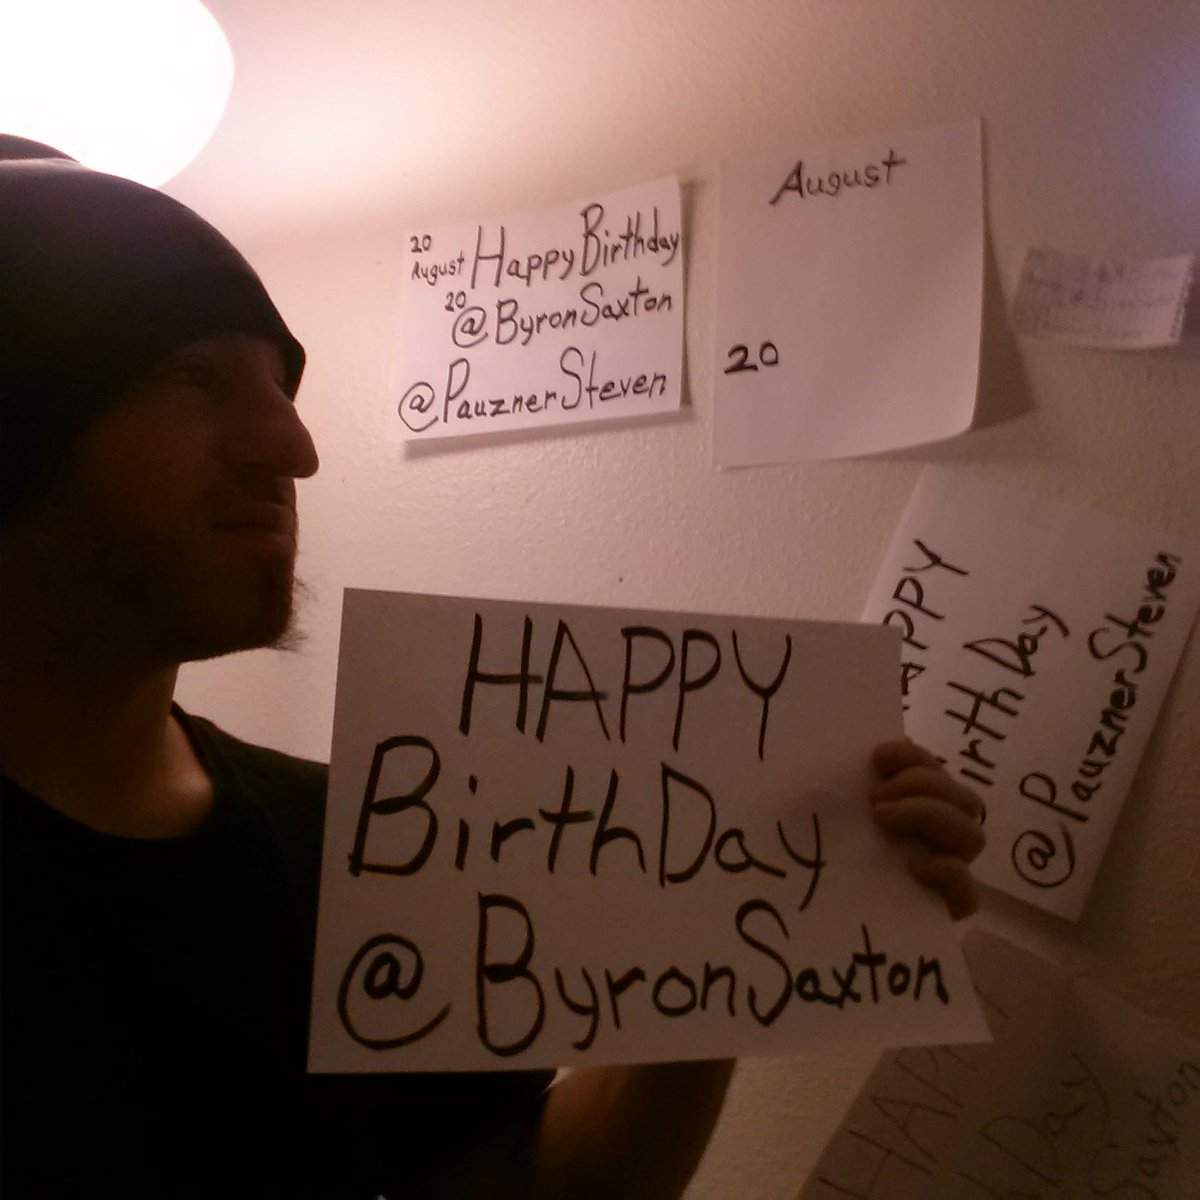 ByronSaxton photo